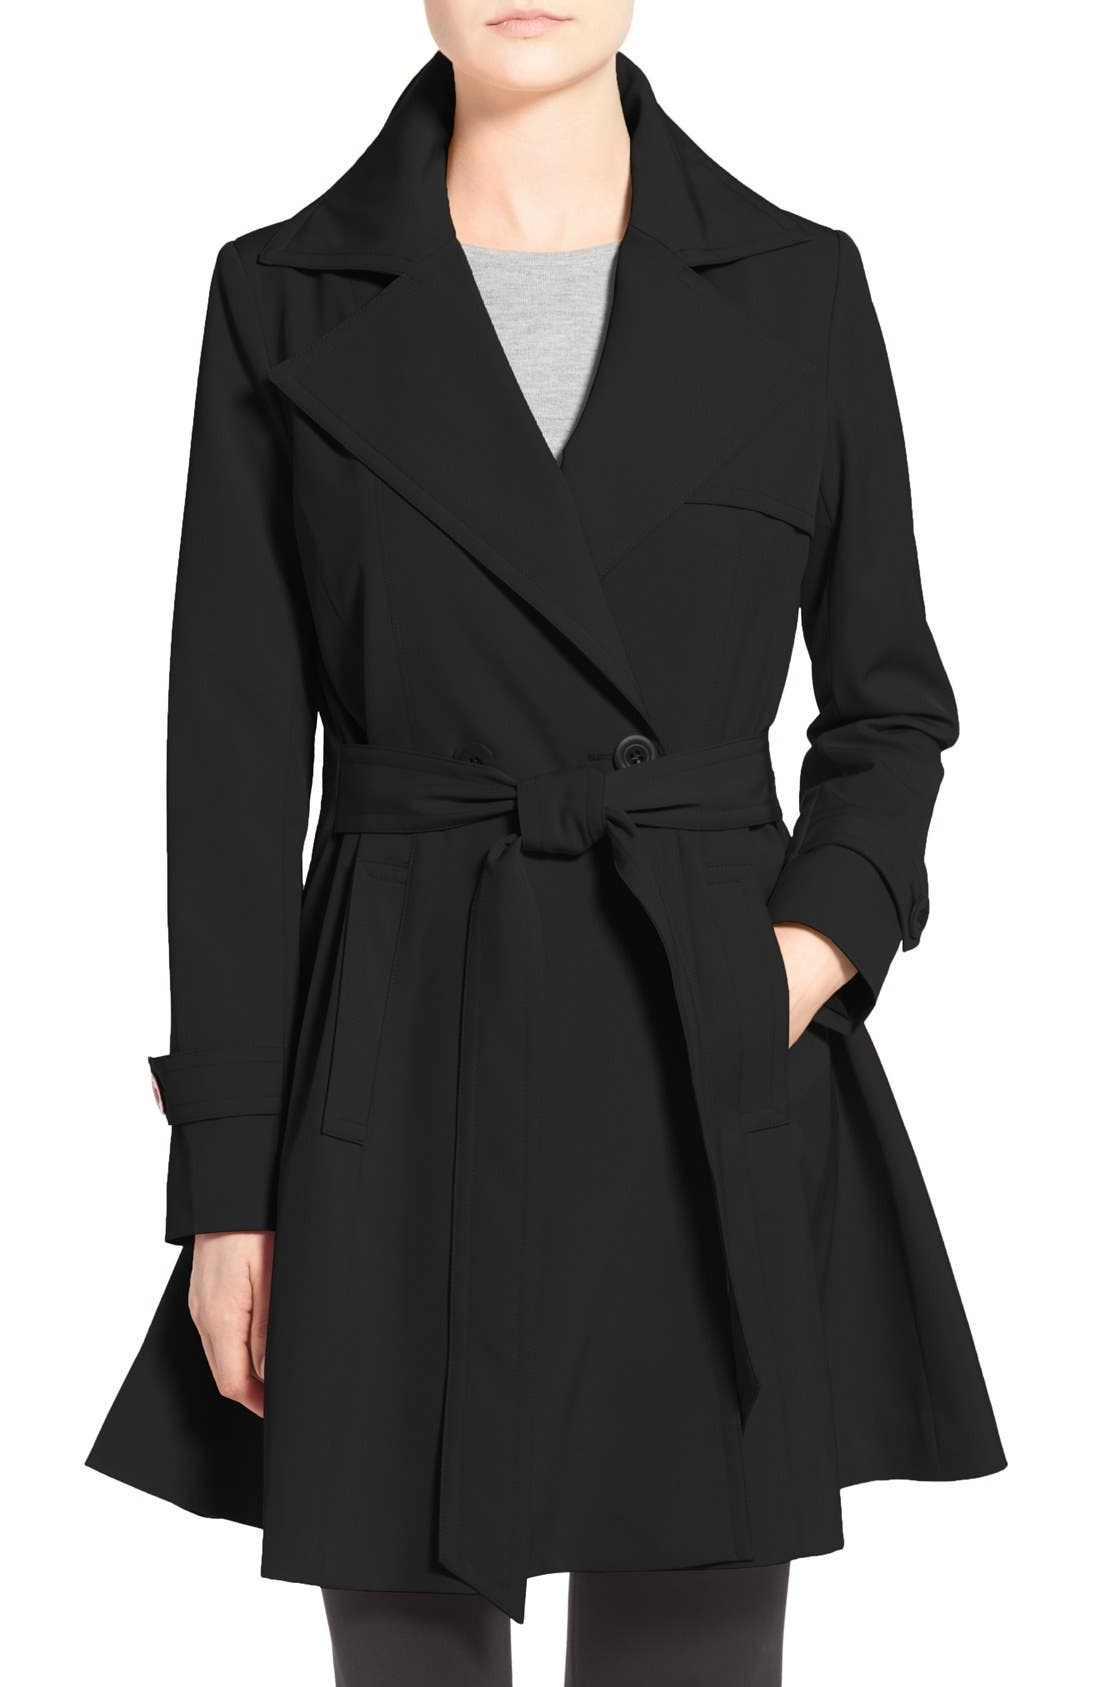 Main Image - Trina Turk 'Phoebe' Double Breasted Trench Coat (Online Only) (Regular & Petite)